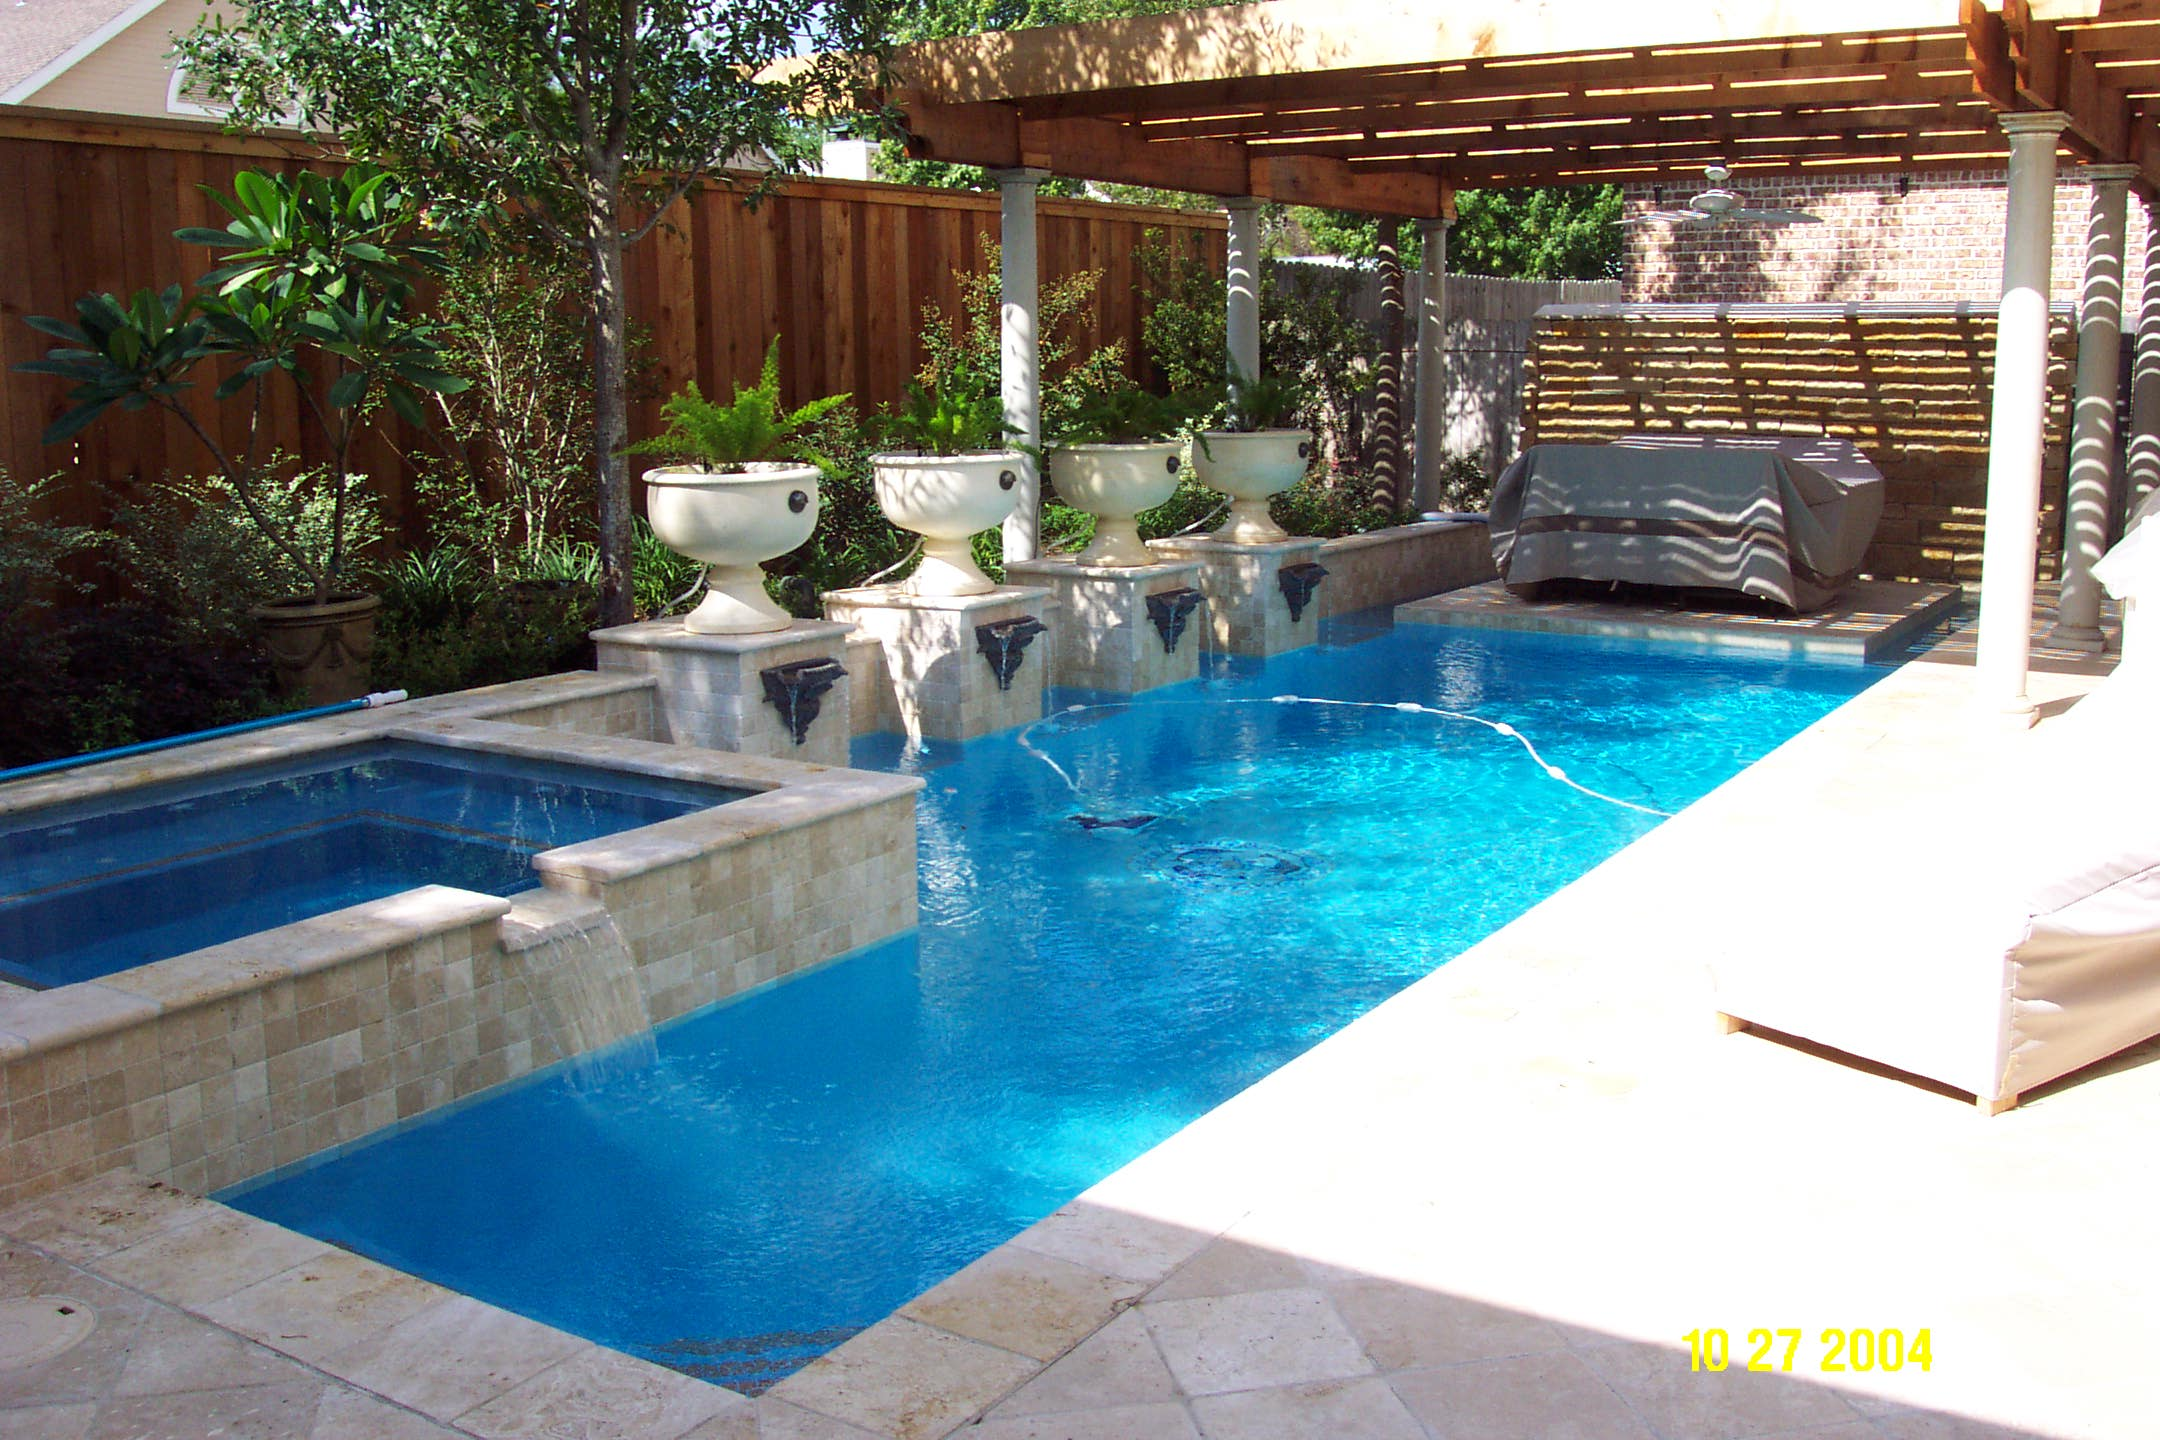 Pool design for small yards homesfeed for Pool design 2015